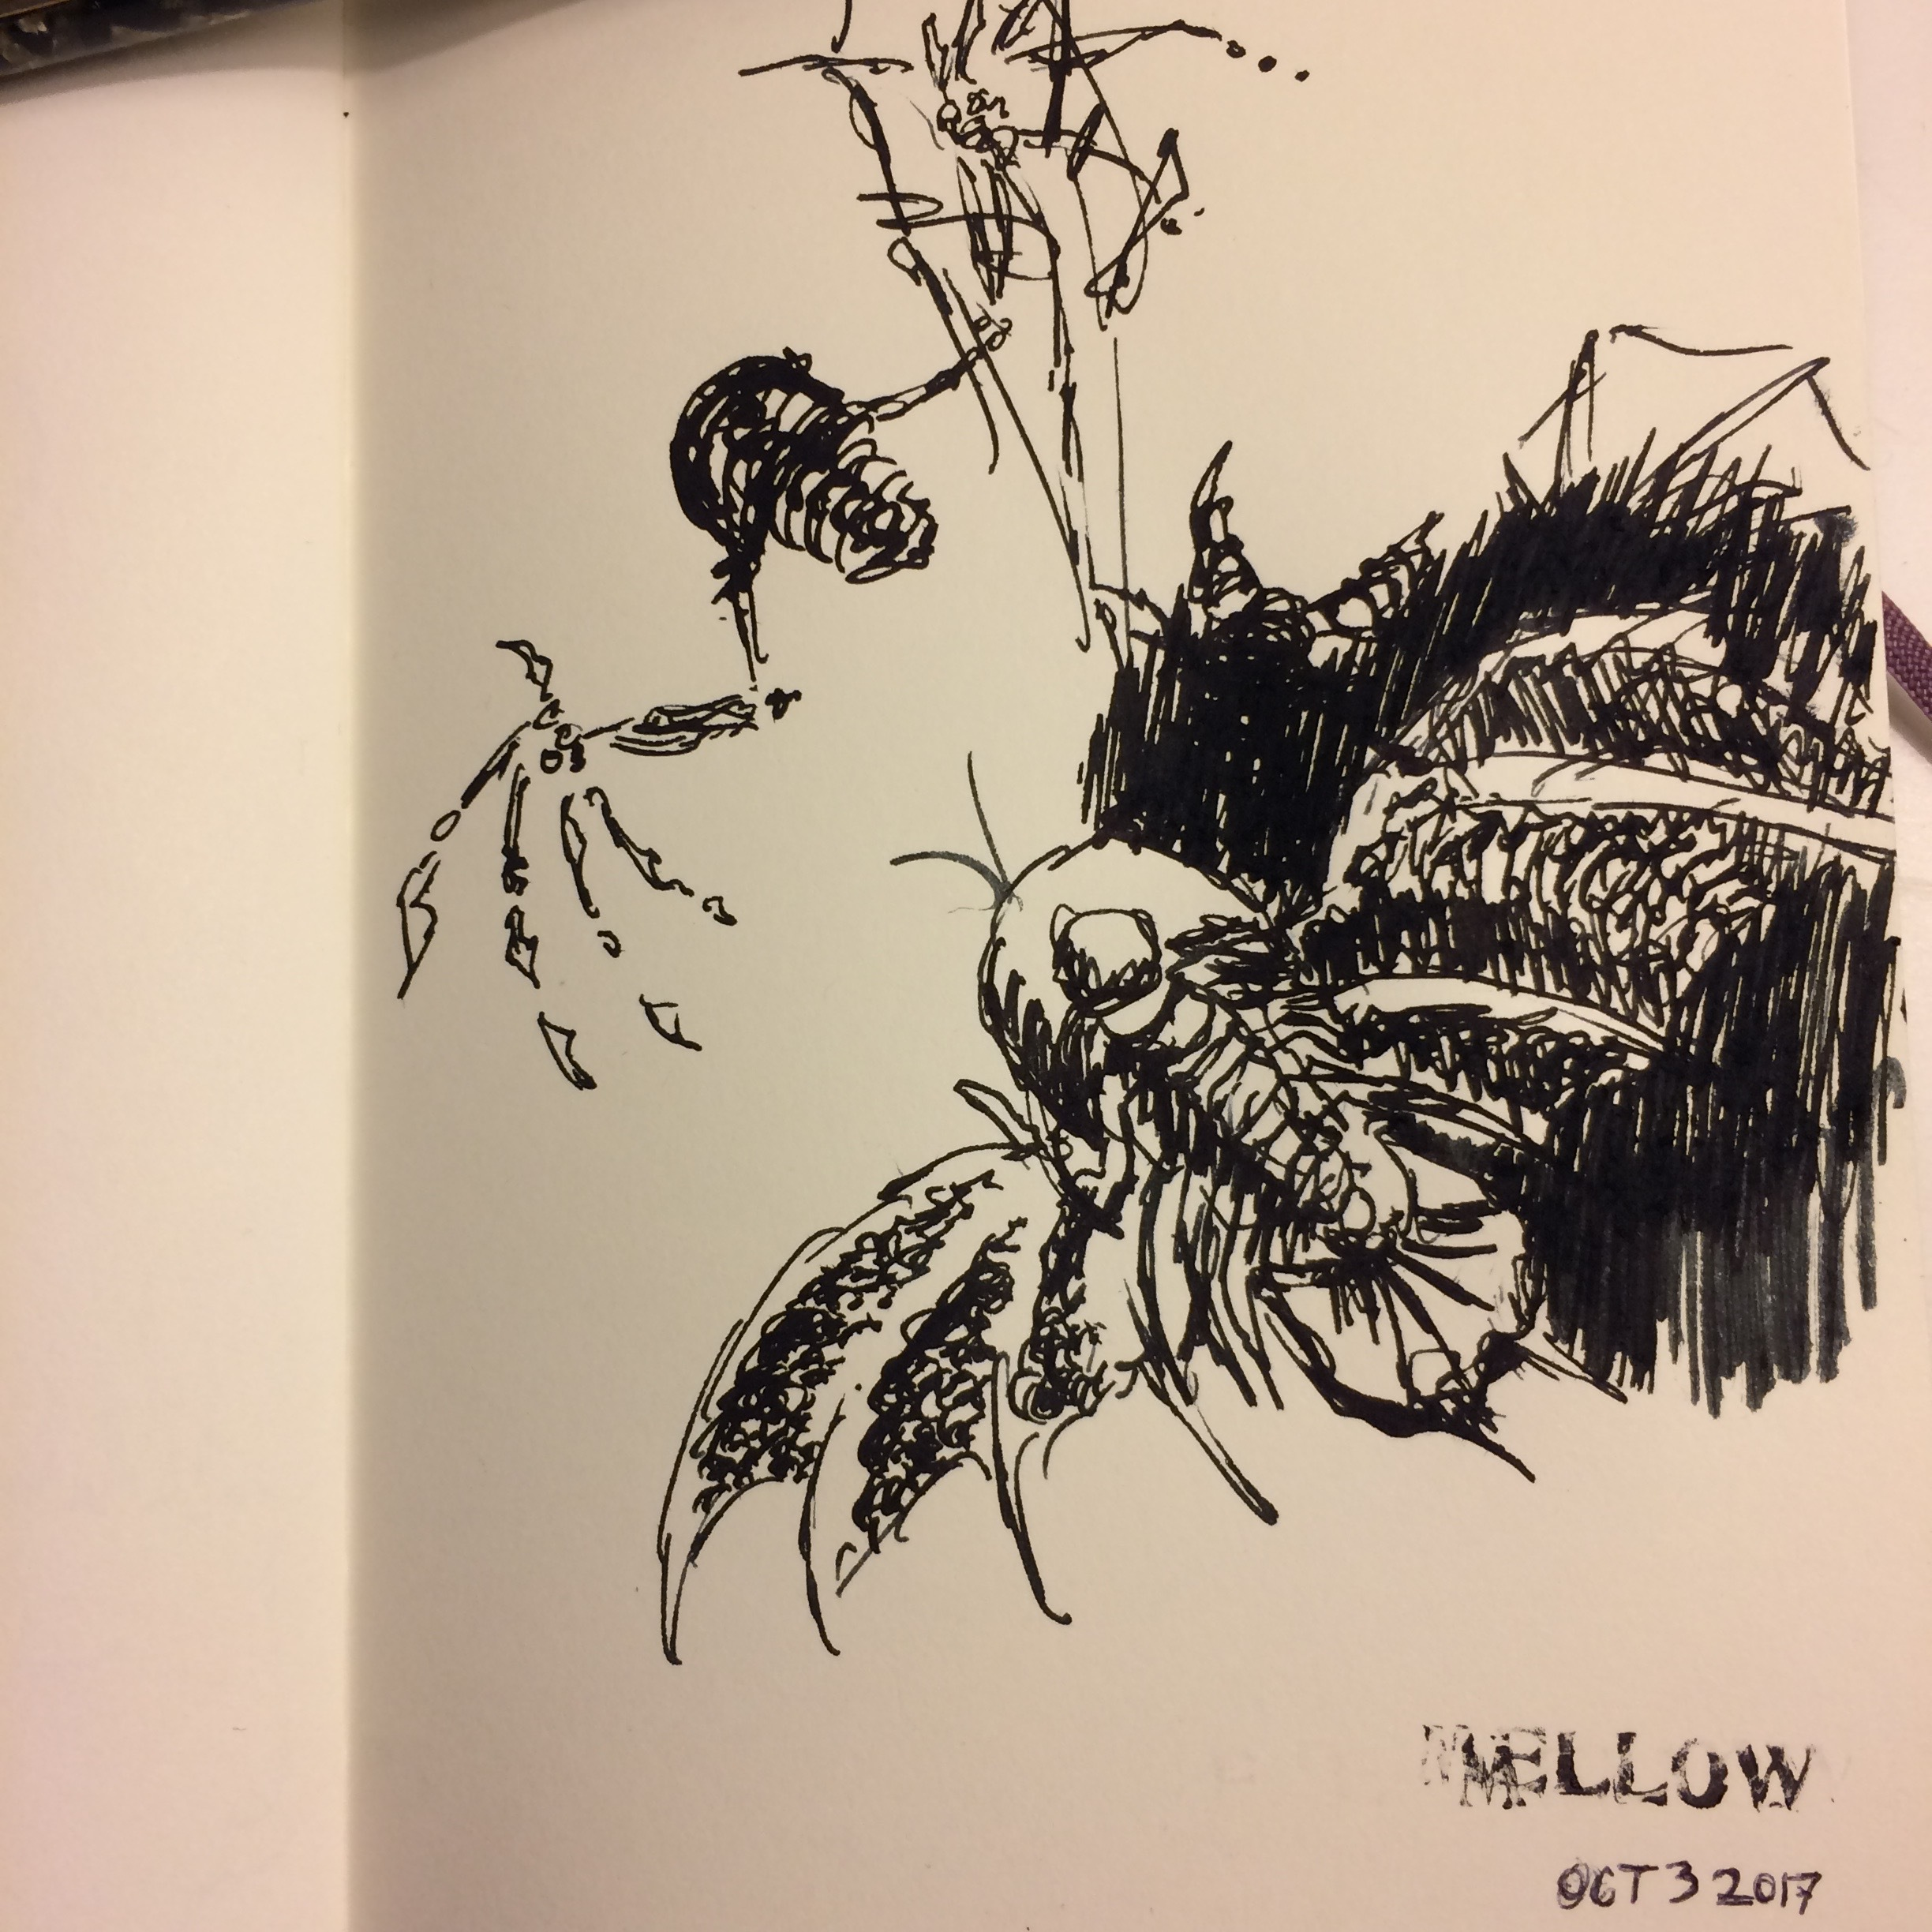 A couple of scribbly winged trilobites.  Uh-oh, these #inktober sketches are tumbling downhill. Maybe less drawing at 1 in the morning after a long day.